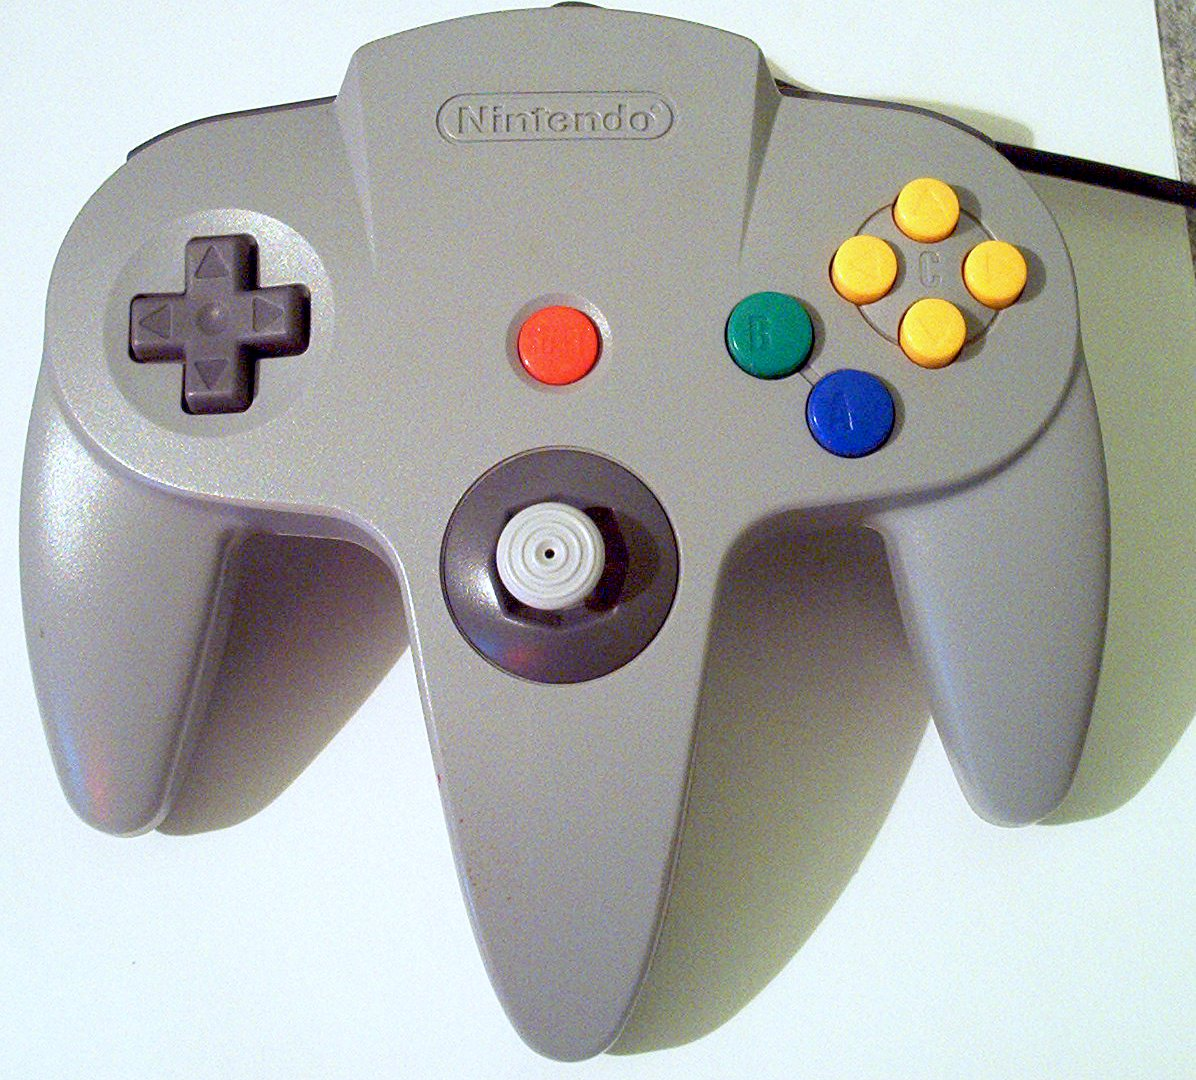 how to use ps4 controller with project64